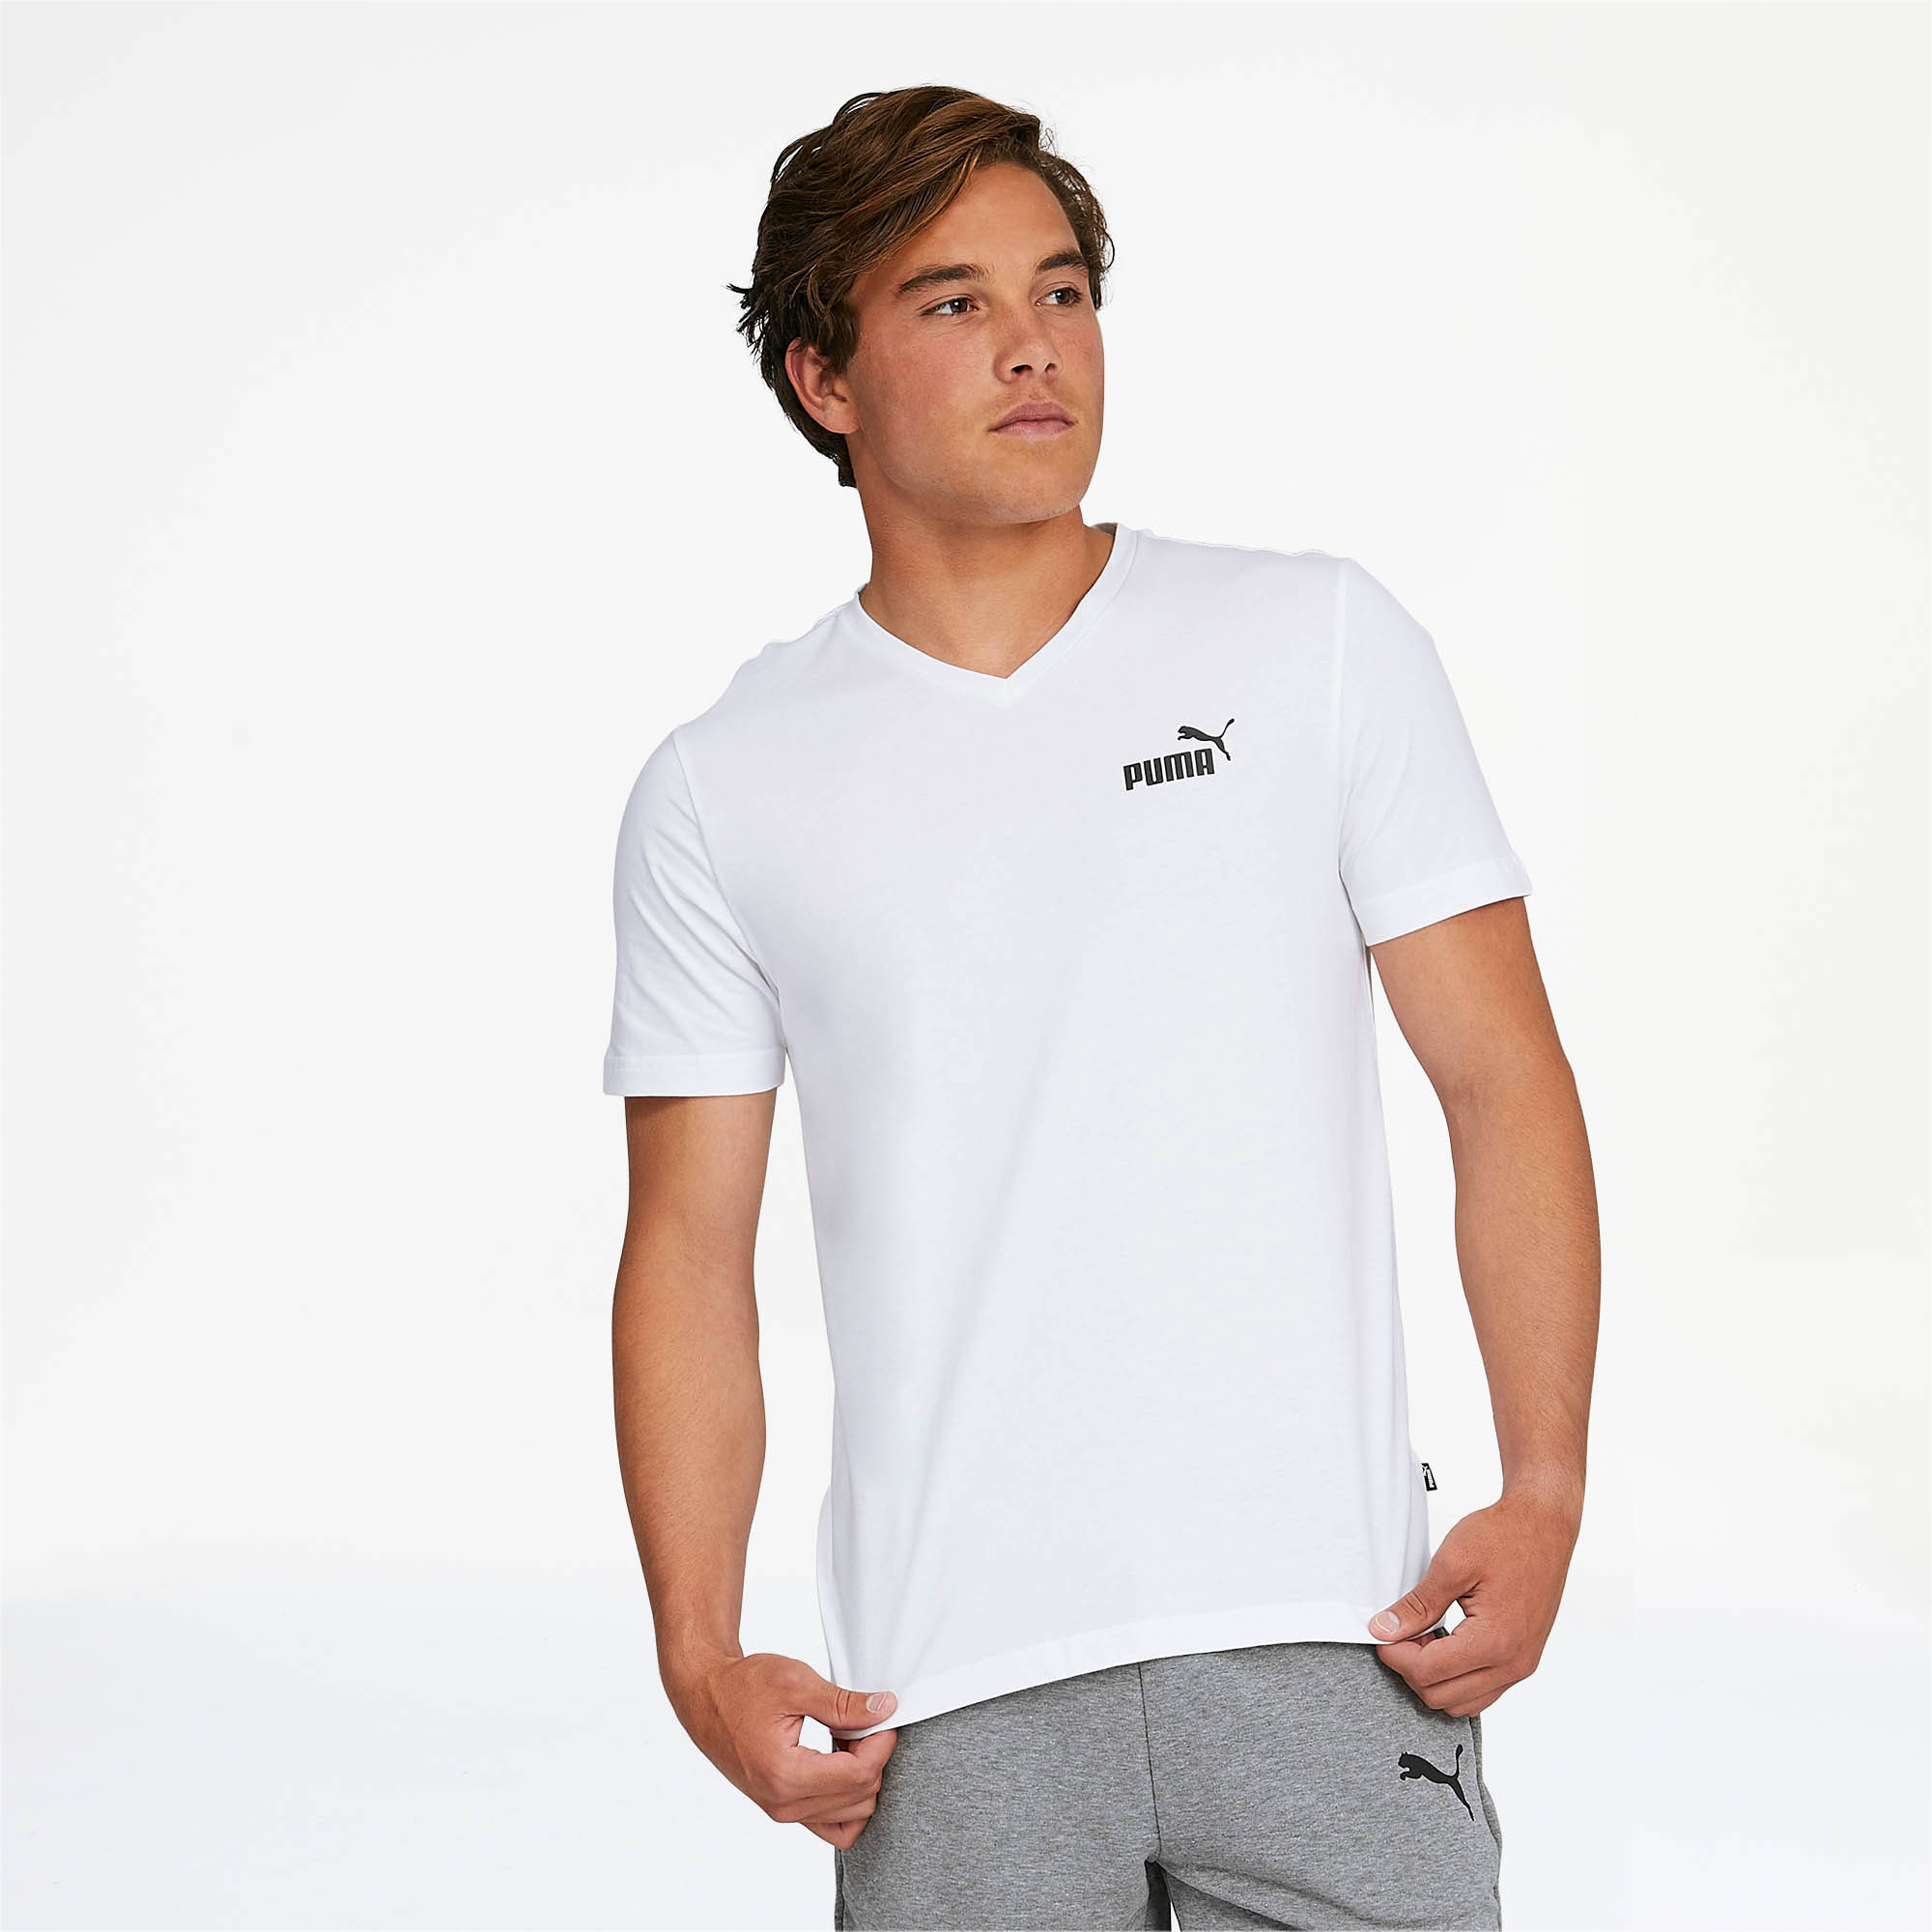 PUMA-Essentials-Men-039-s-V-Neck-Tee-Men-Tee-Basics thumbnail 11